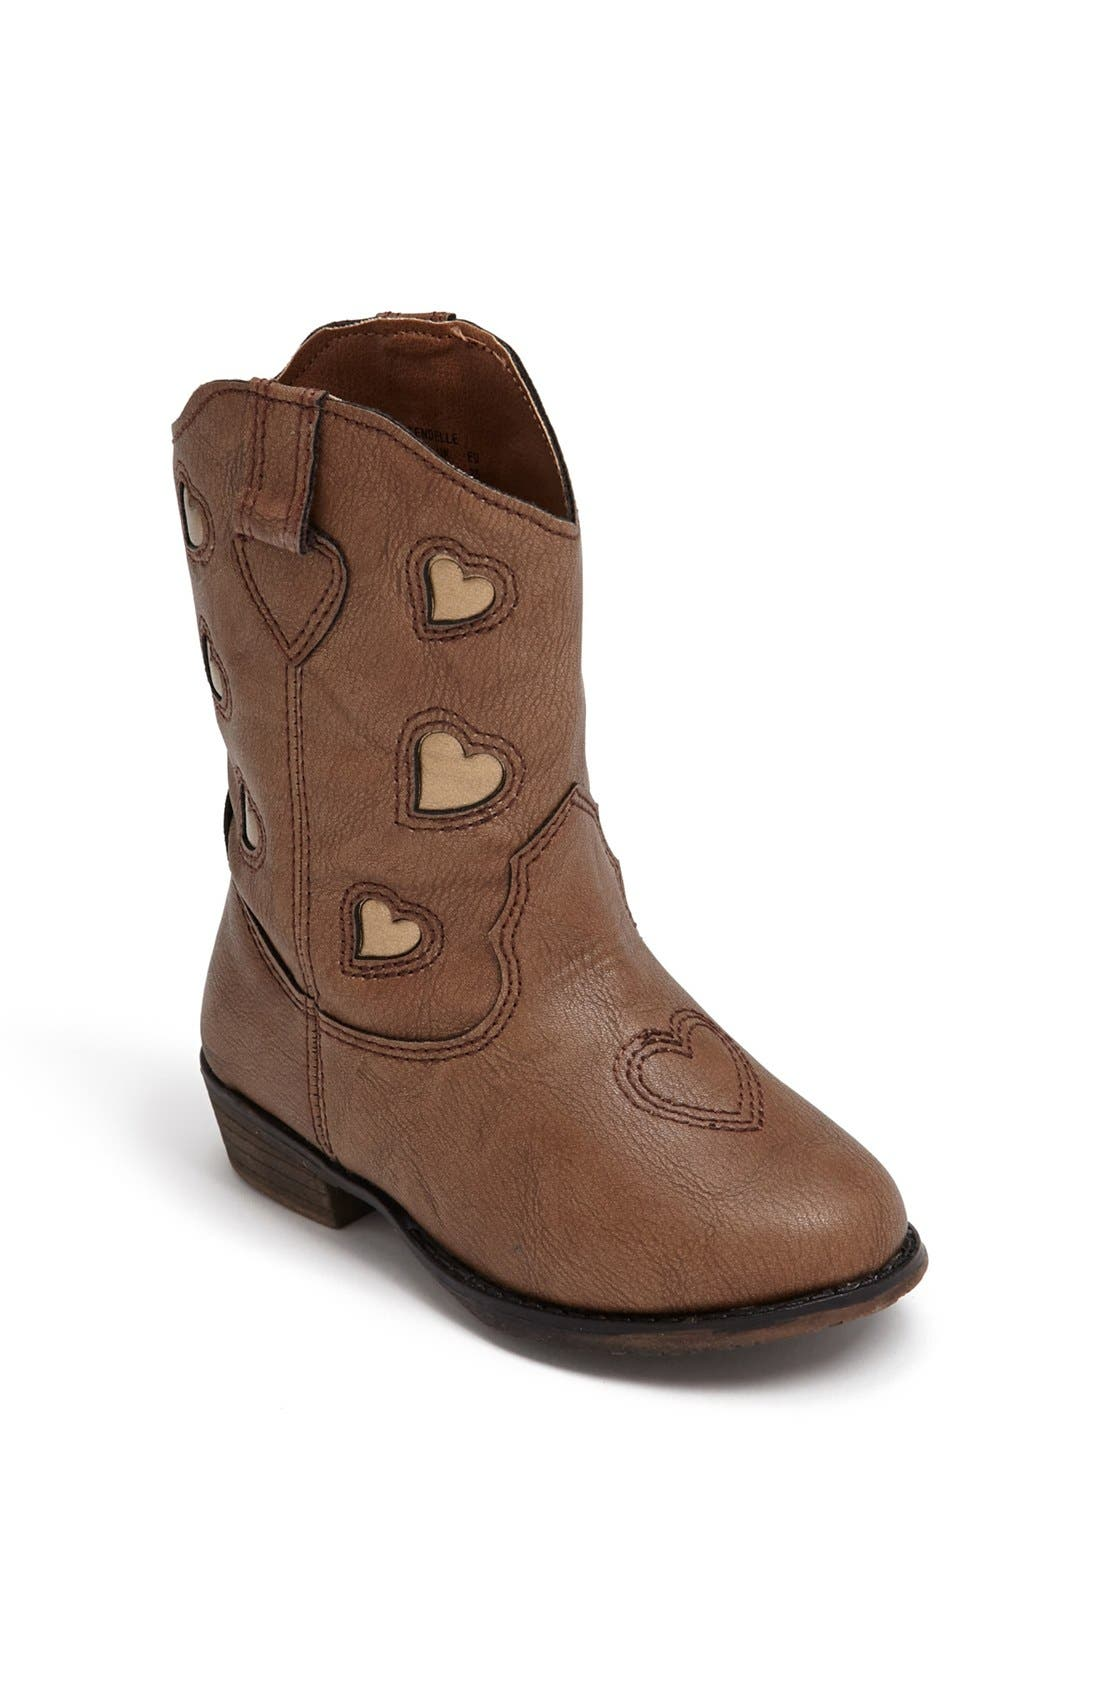 Alternate Image 1 Selected - Jessica Simpson 'Kendelle' Boot (Walker & Toddler)